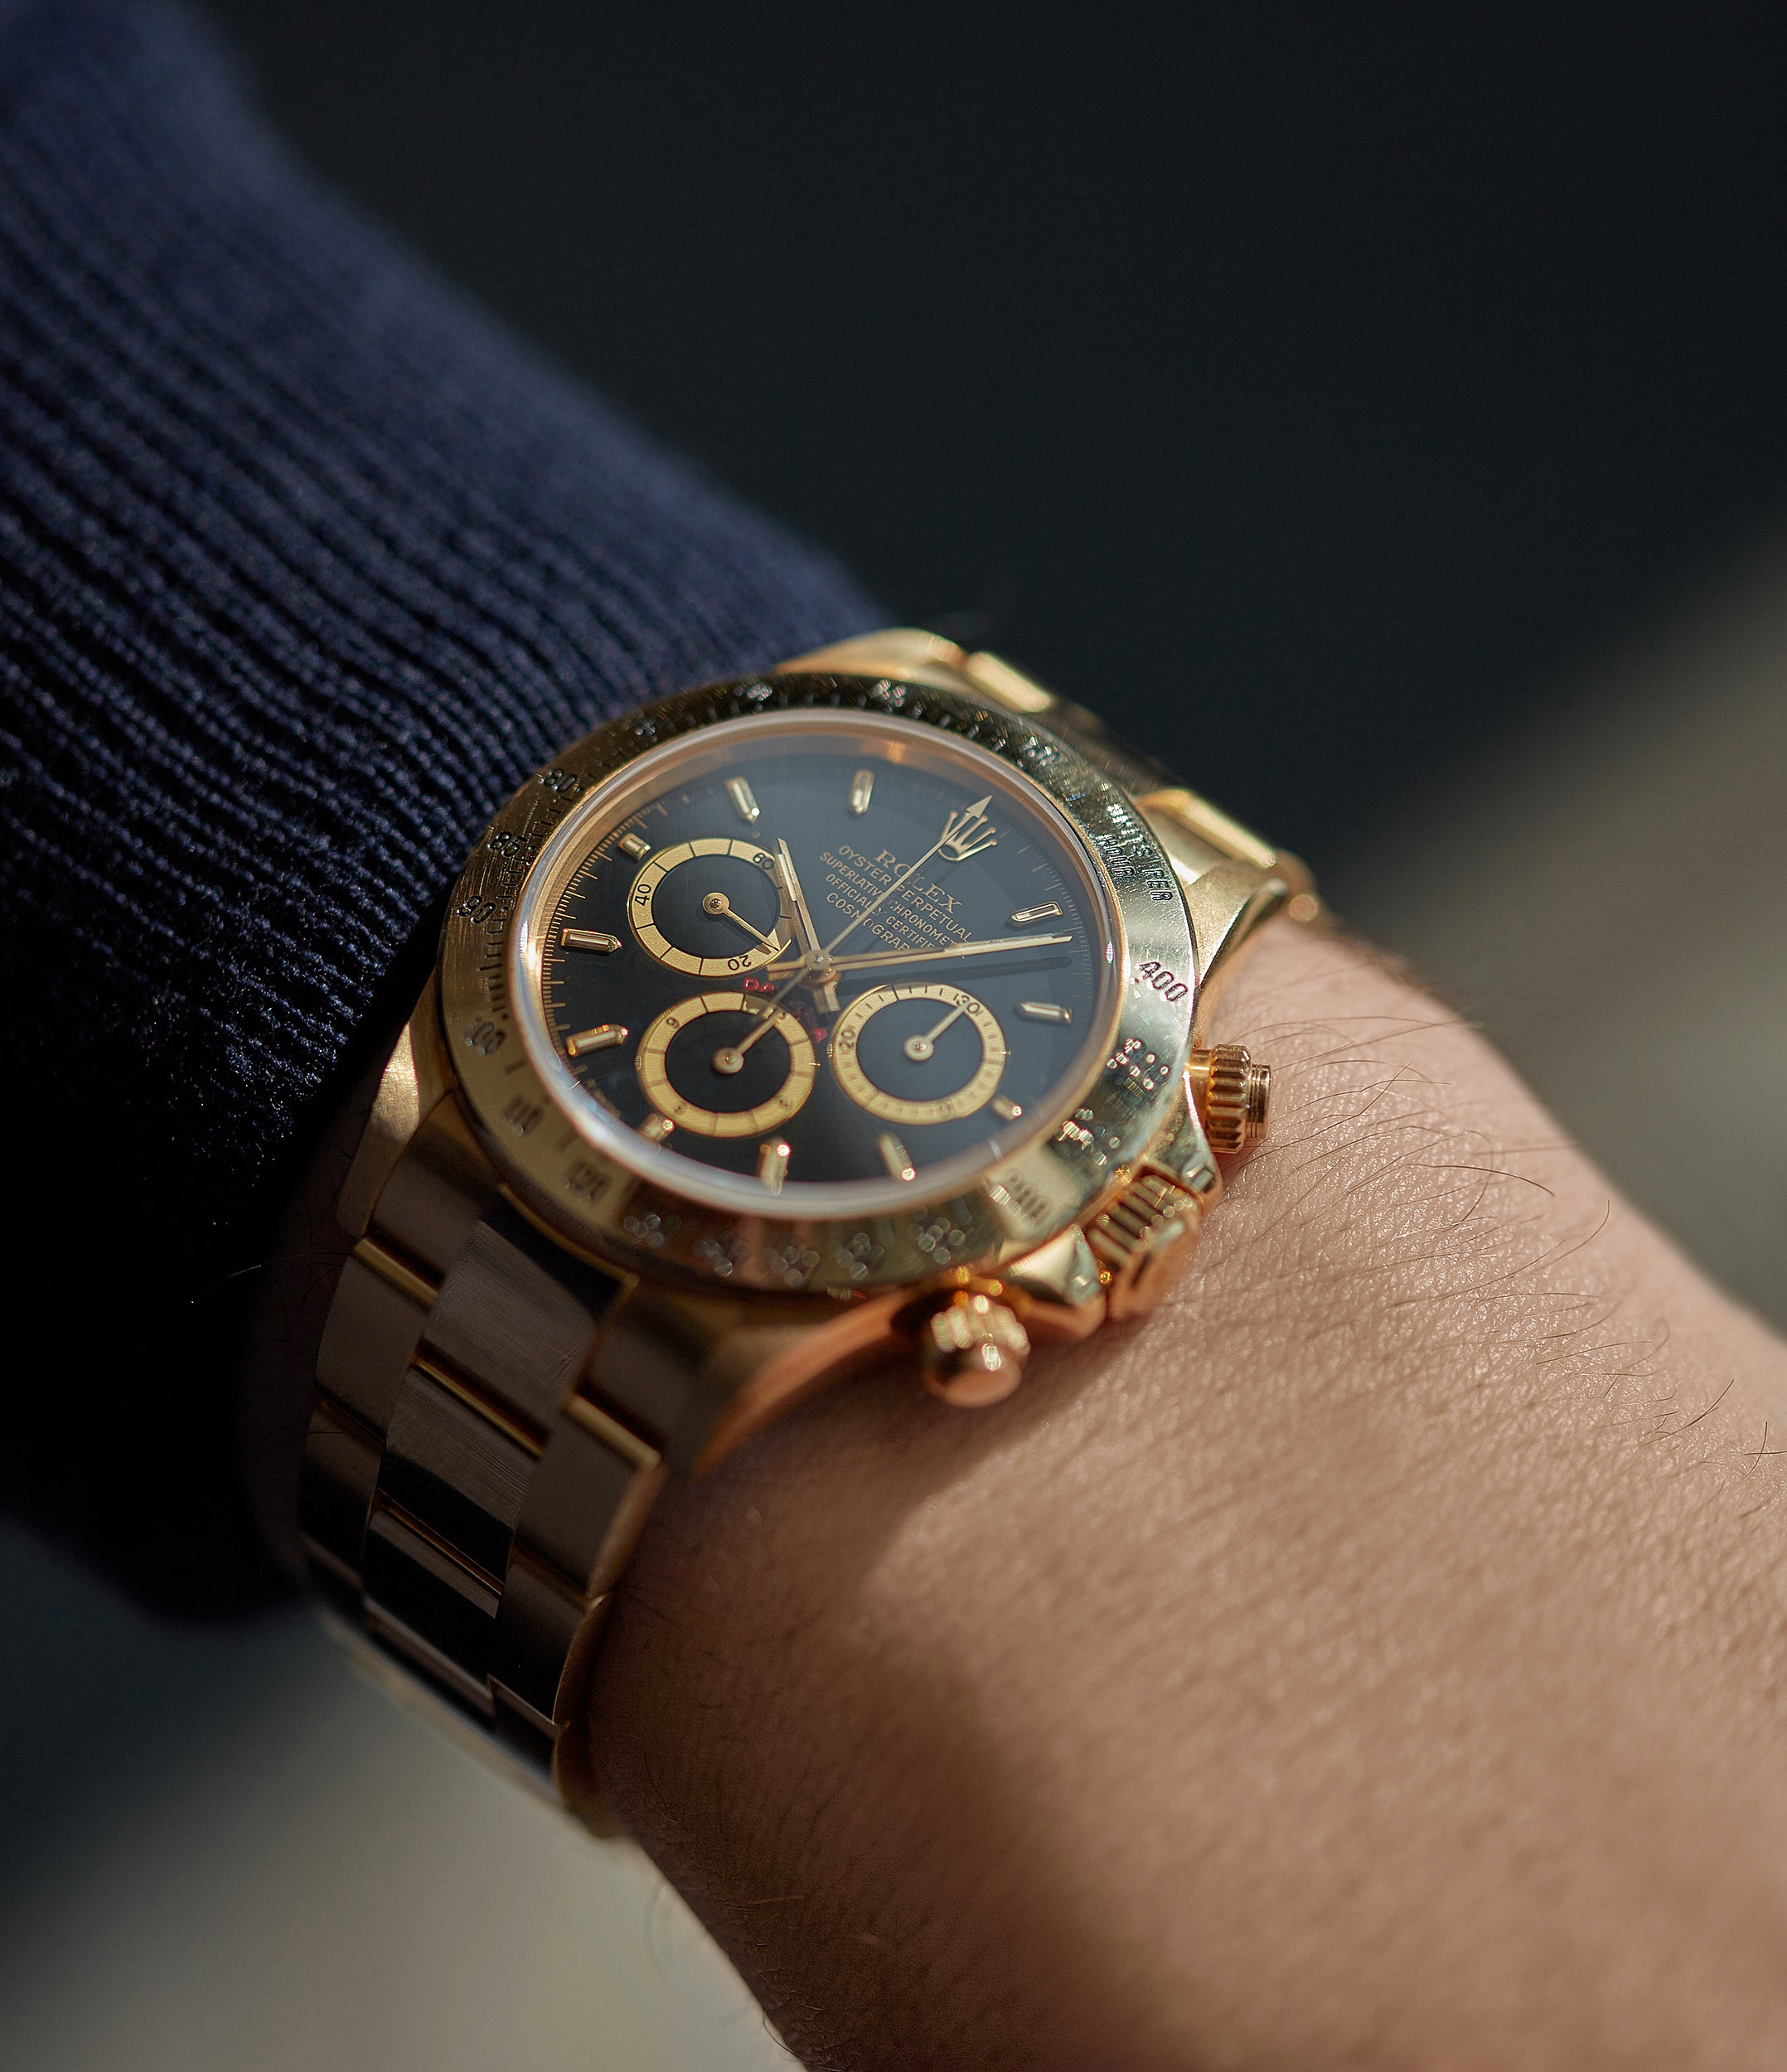 selling Rolex Daytona Zenith 16528 yellow gold black dial full set vintage watch for sale online at A Collected Man London UK specialist of rare watches